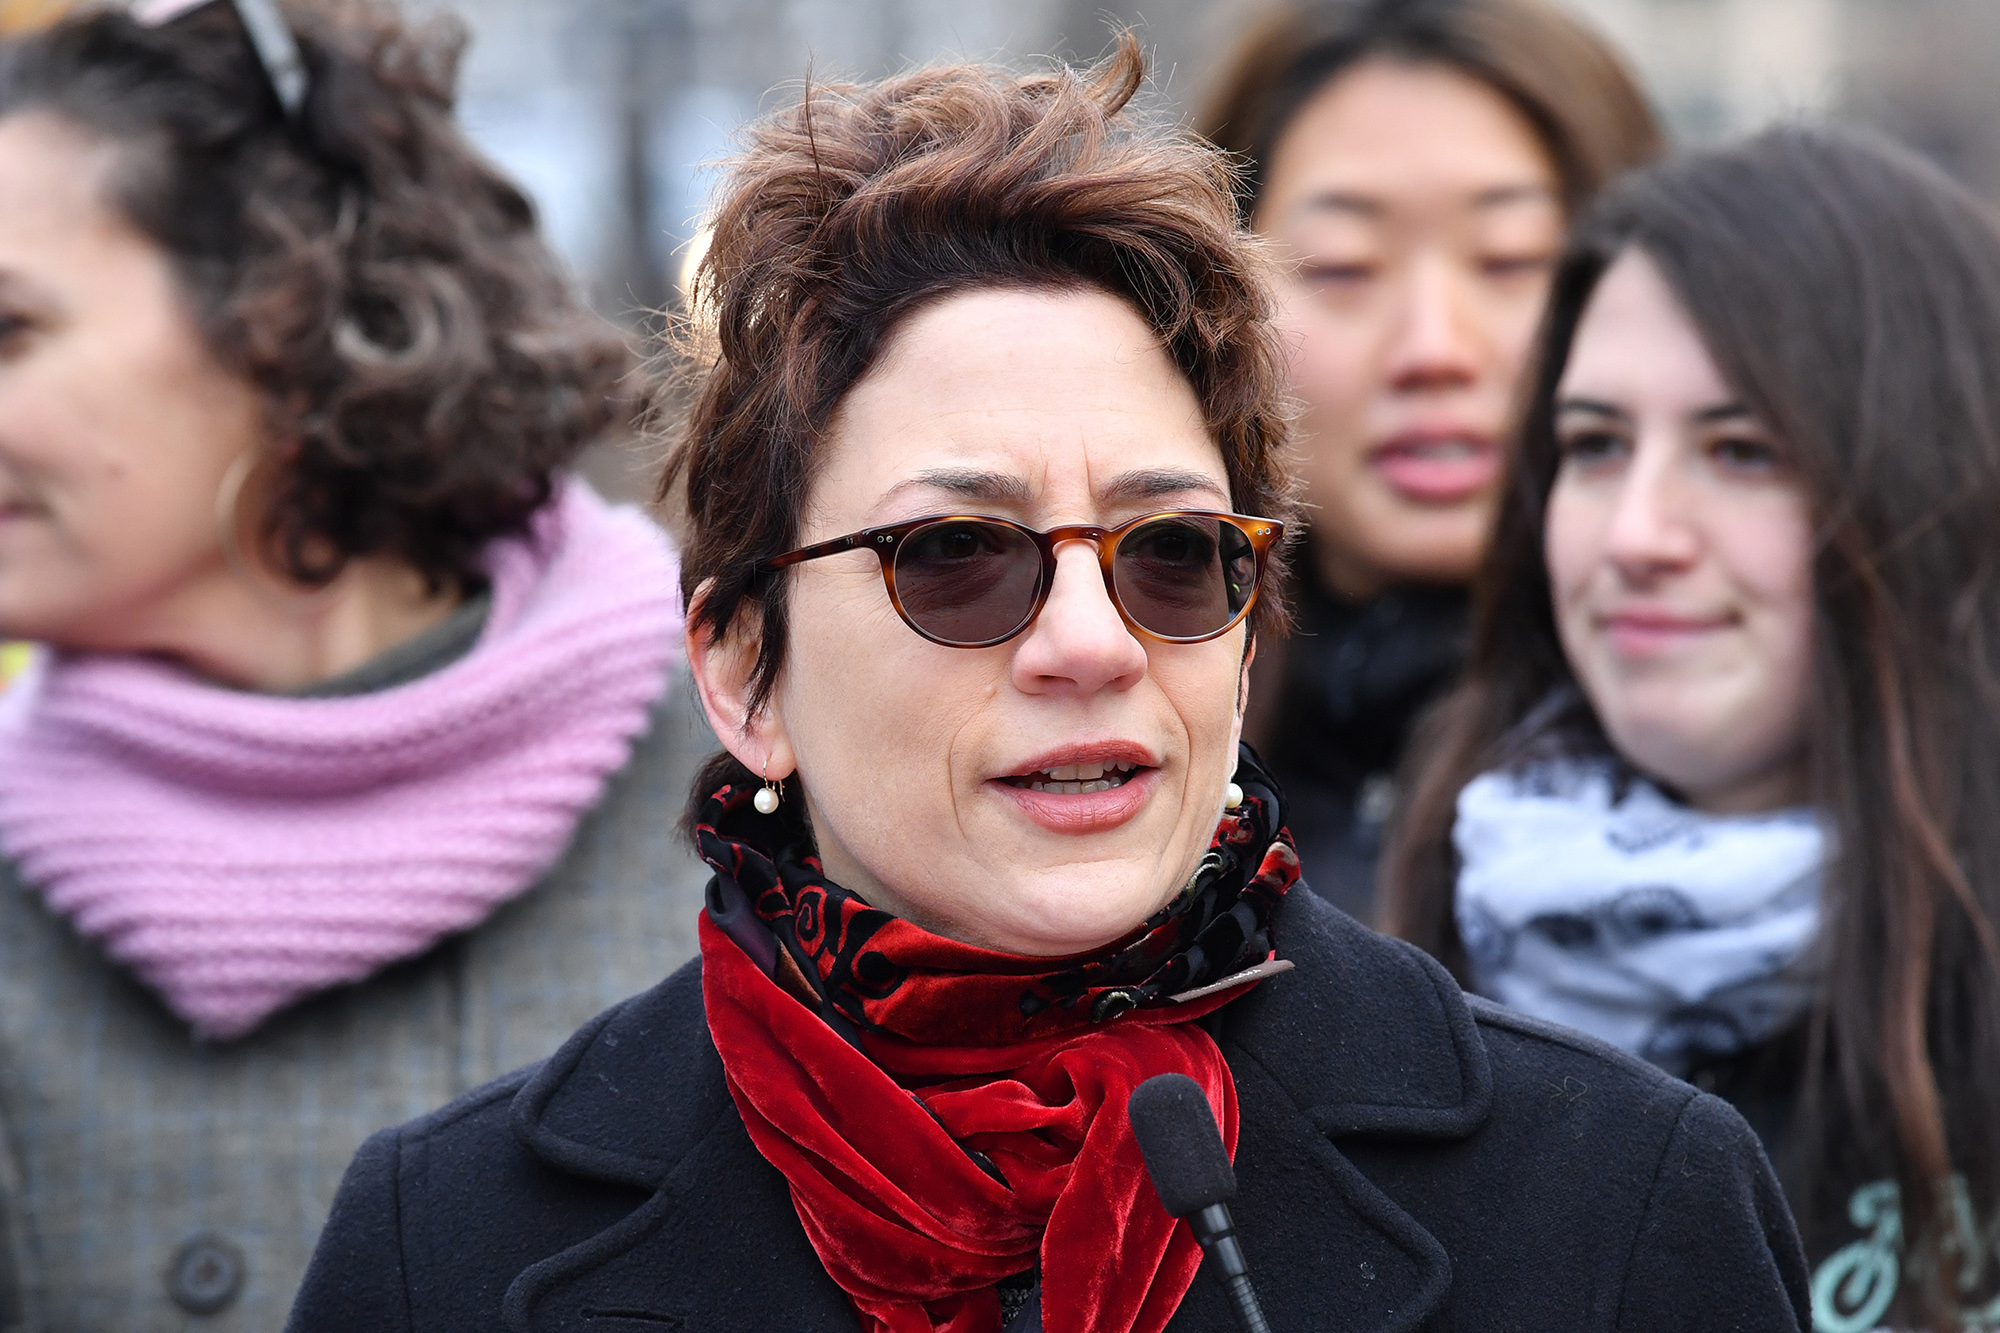 Nyc Transportation Commissioner Polly Trottenberg Resigns It's a mature library which is almost synonymous with app resiliency, in the same way that newtonsoft.json is the defacto library for json (de)serialization. nyc transportation commissioner polly